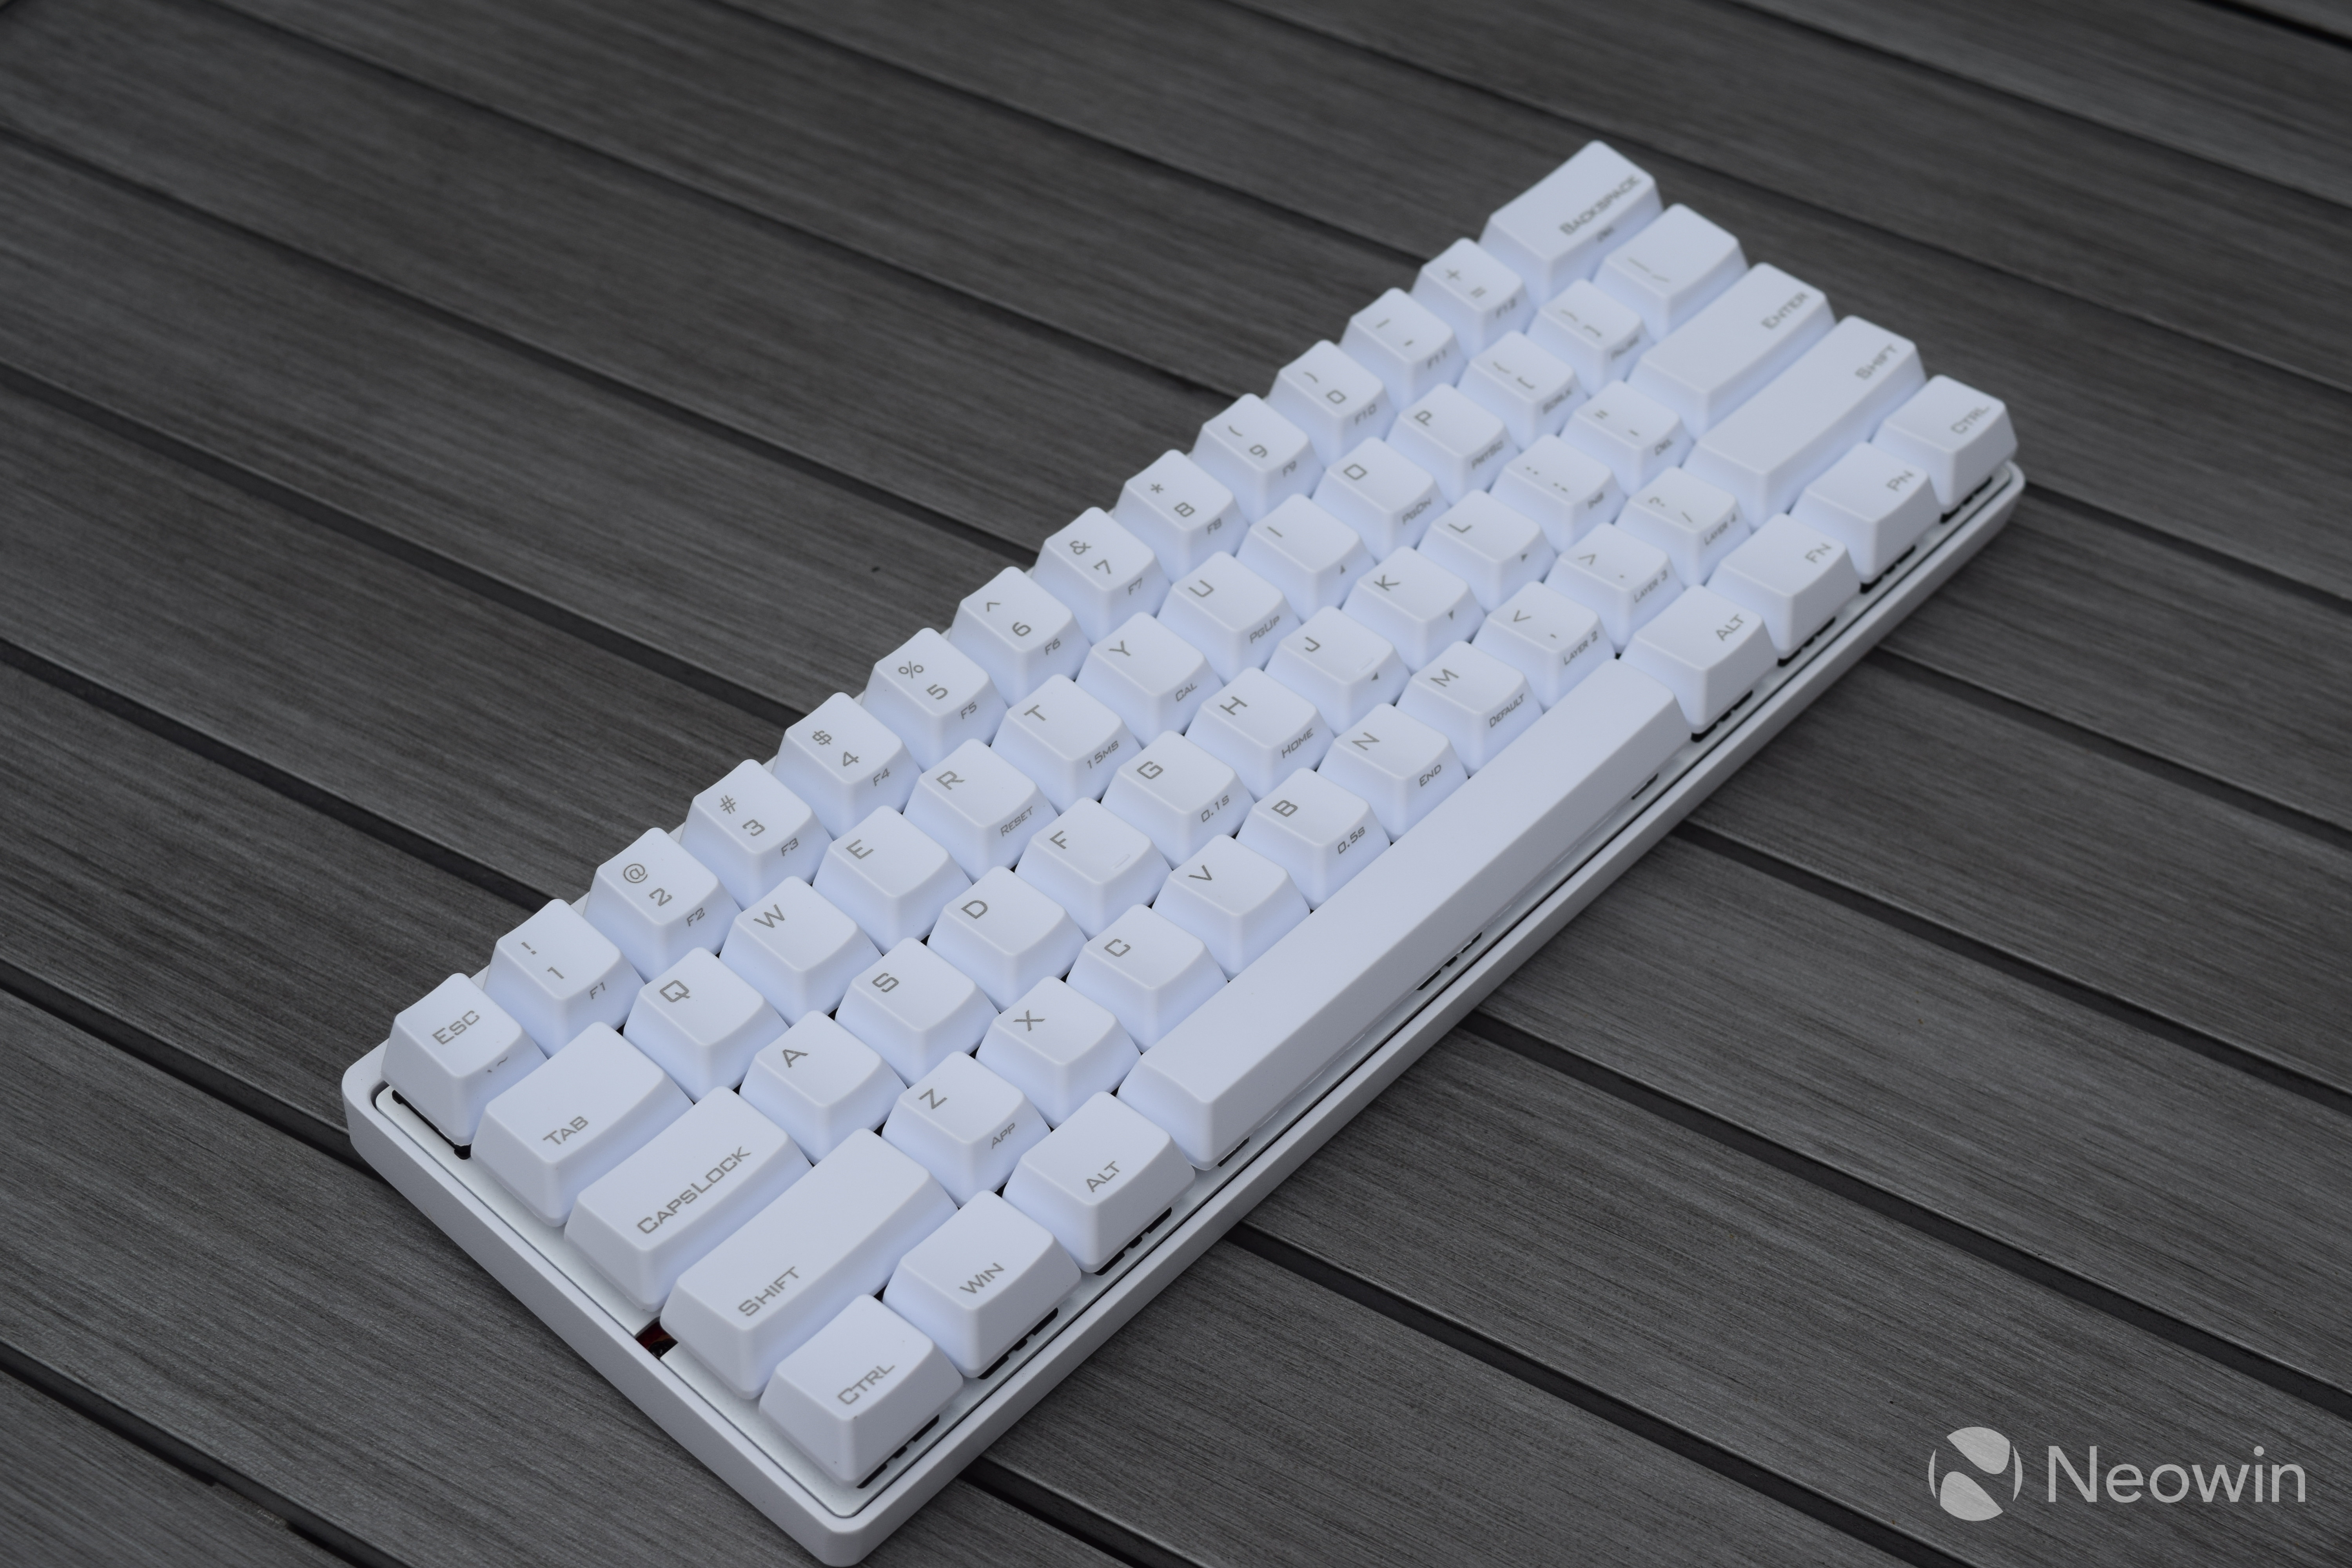 Review of the Vortex POK3R (Poker 3) mechanical keyboard